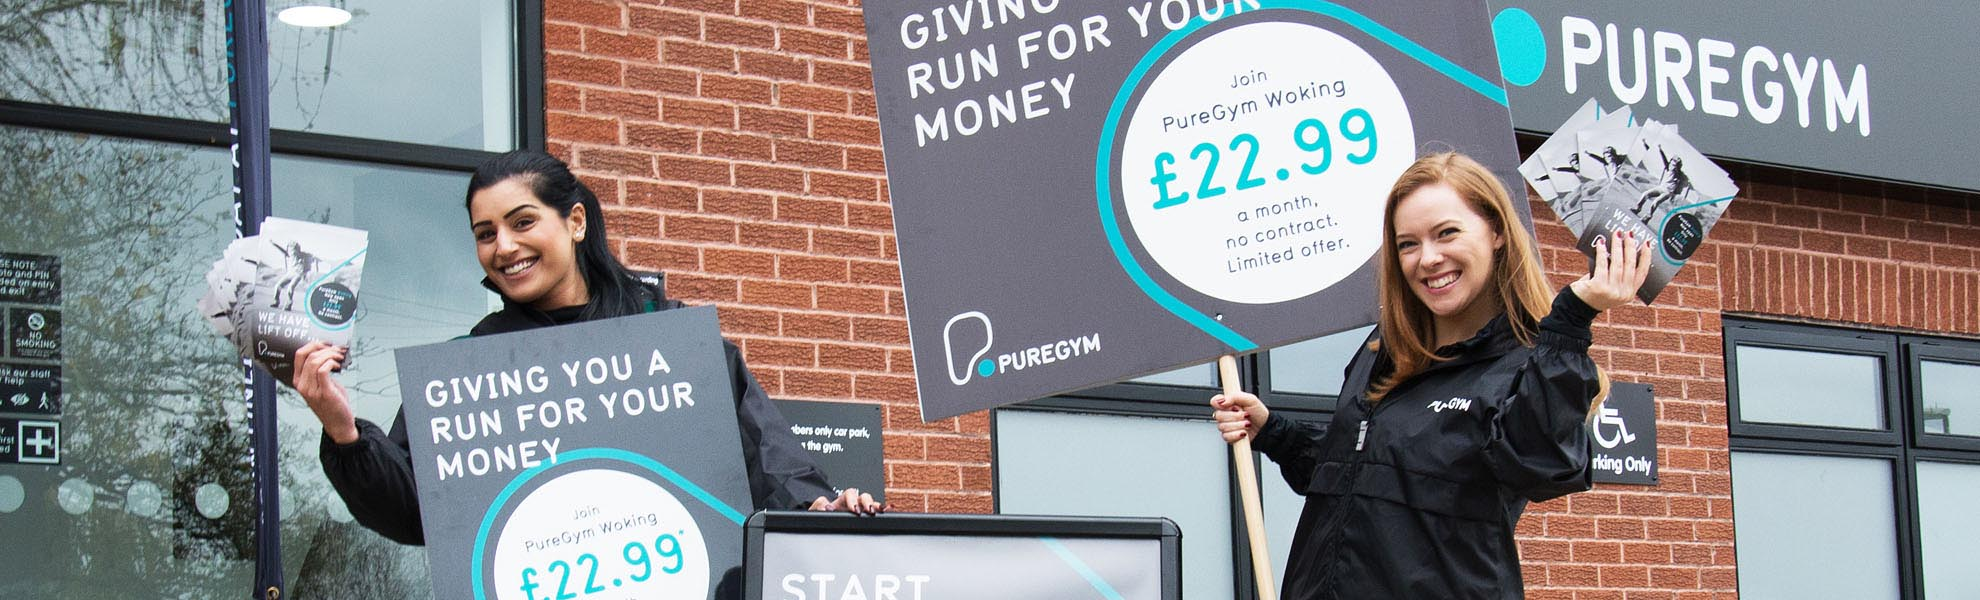 Promotional staff from Zest distribute leaflets for Puregym